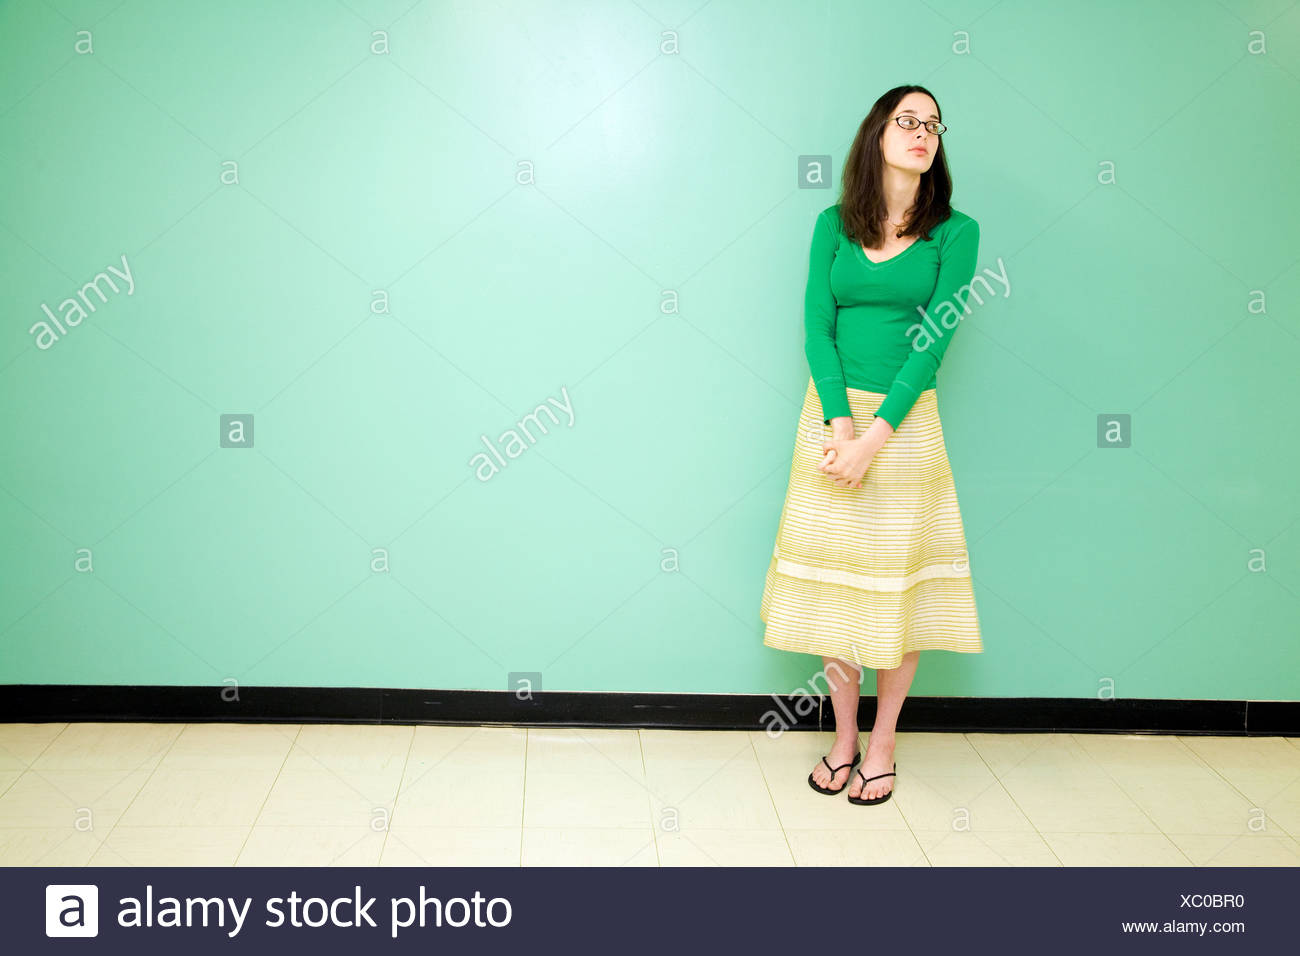 Young woman against a green wall - Stock Image